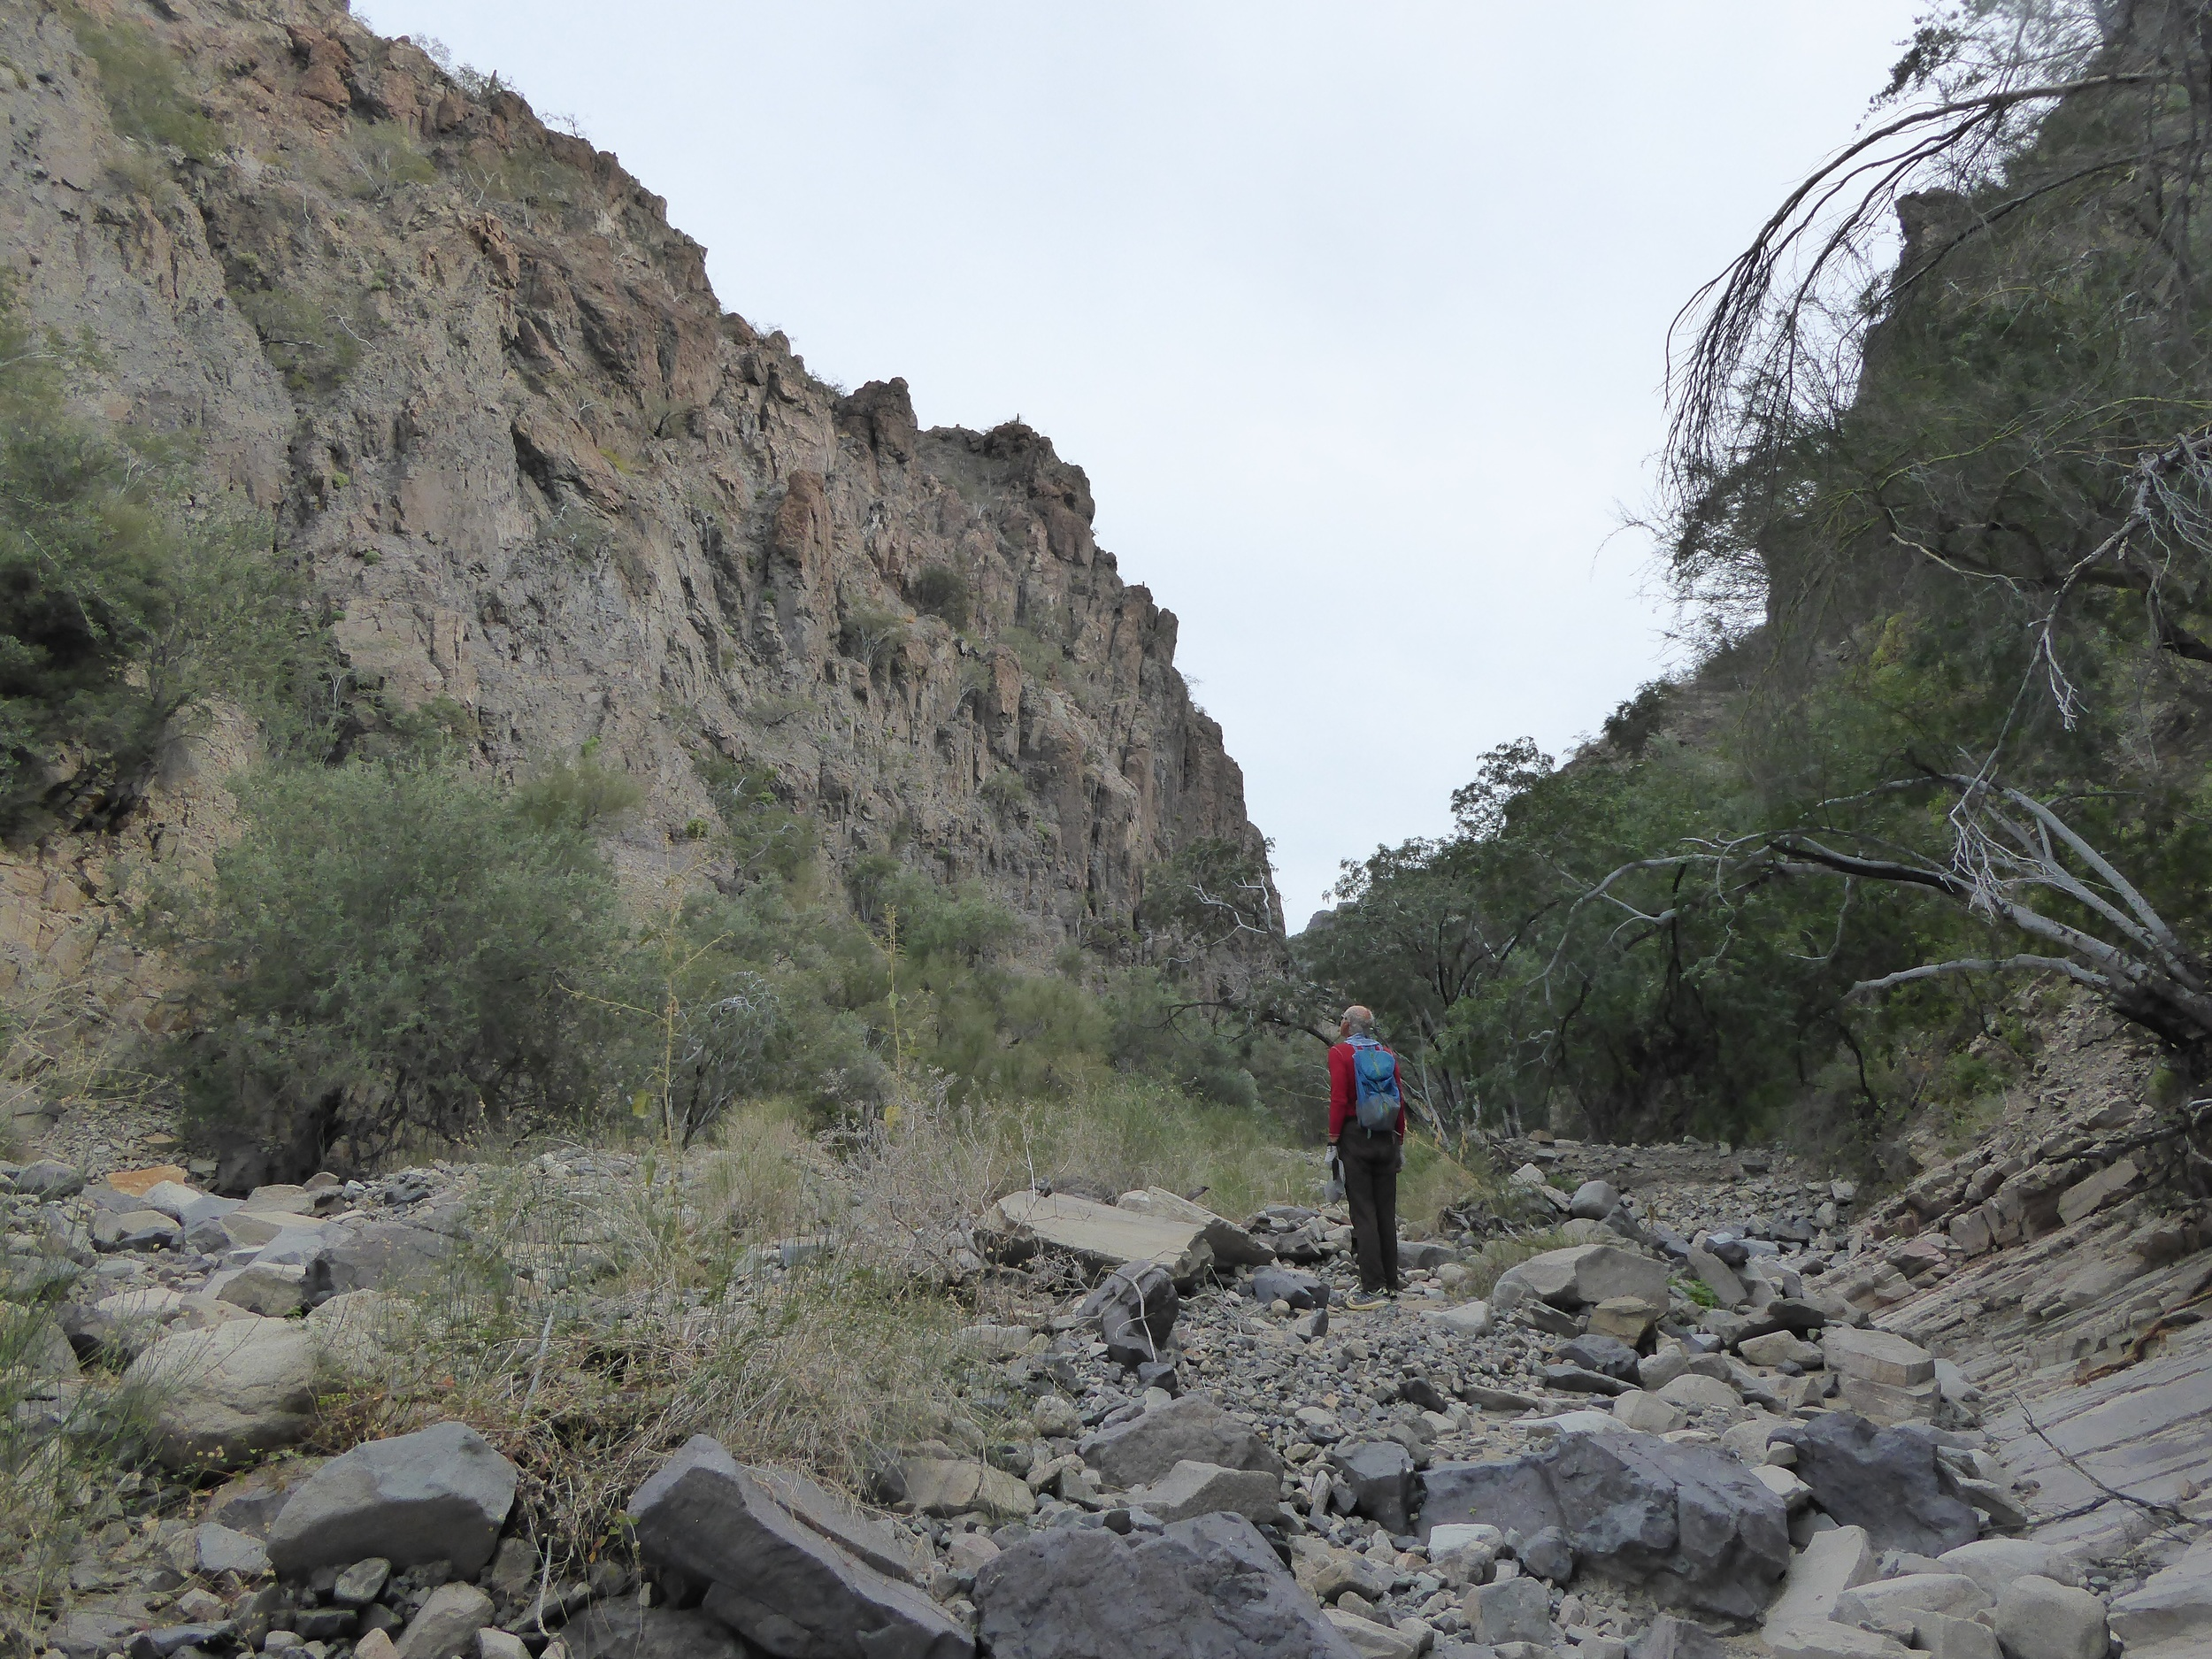 Hiking up the Arroyo